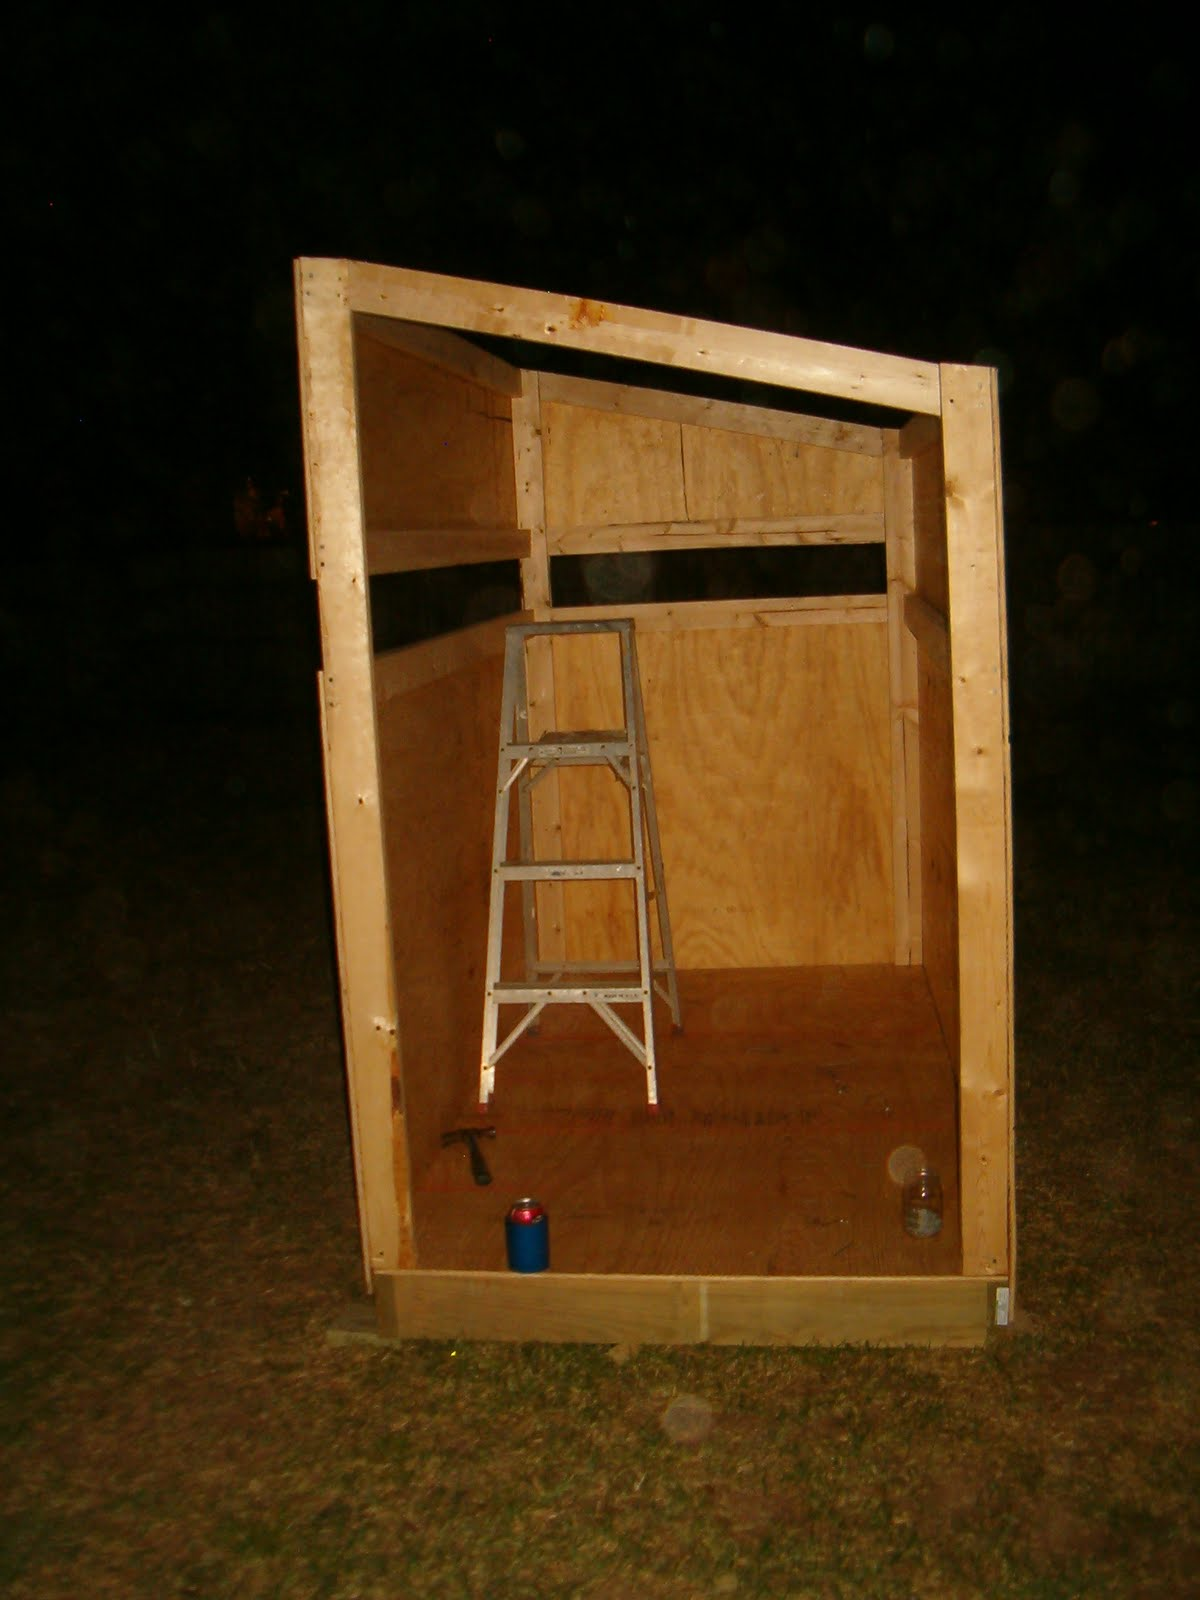 Wooden Deer Stand Designs : Dudleys diary here are some photos of the deer stand